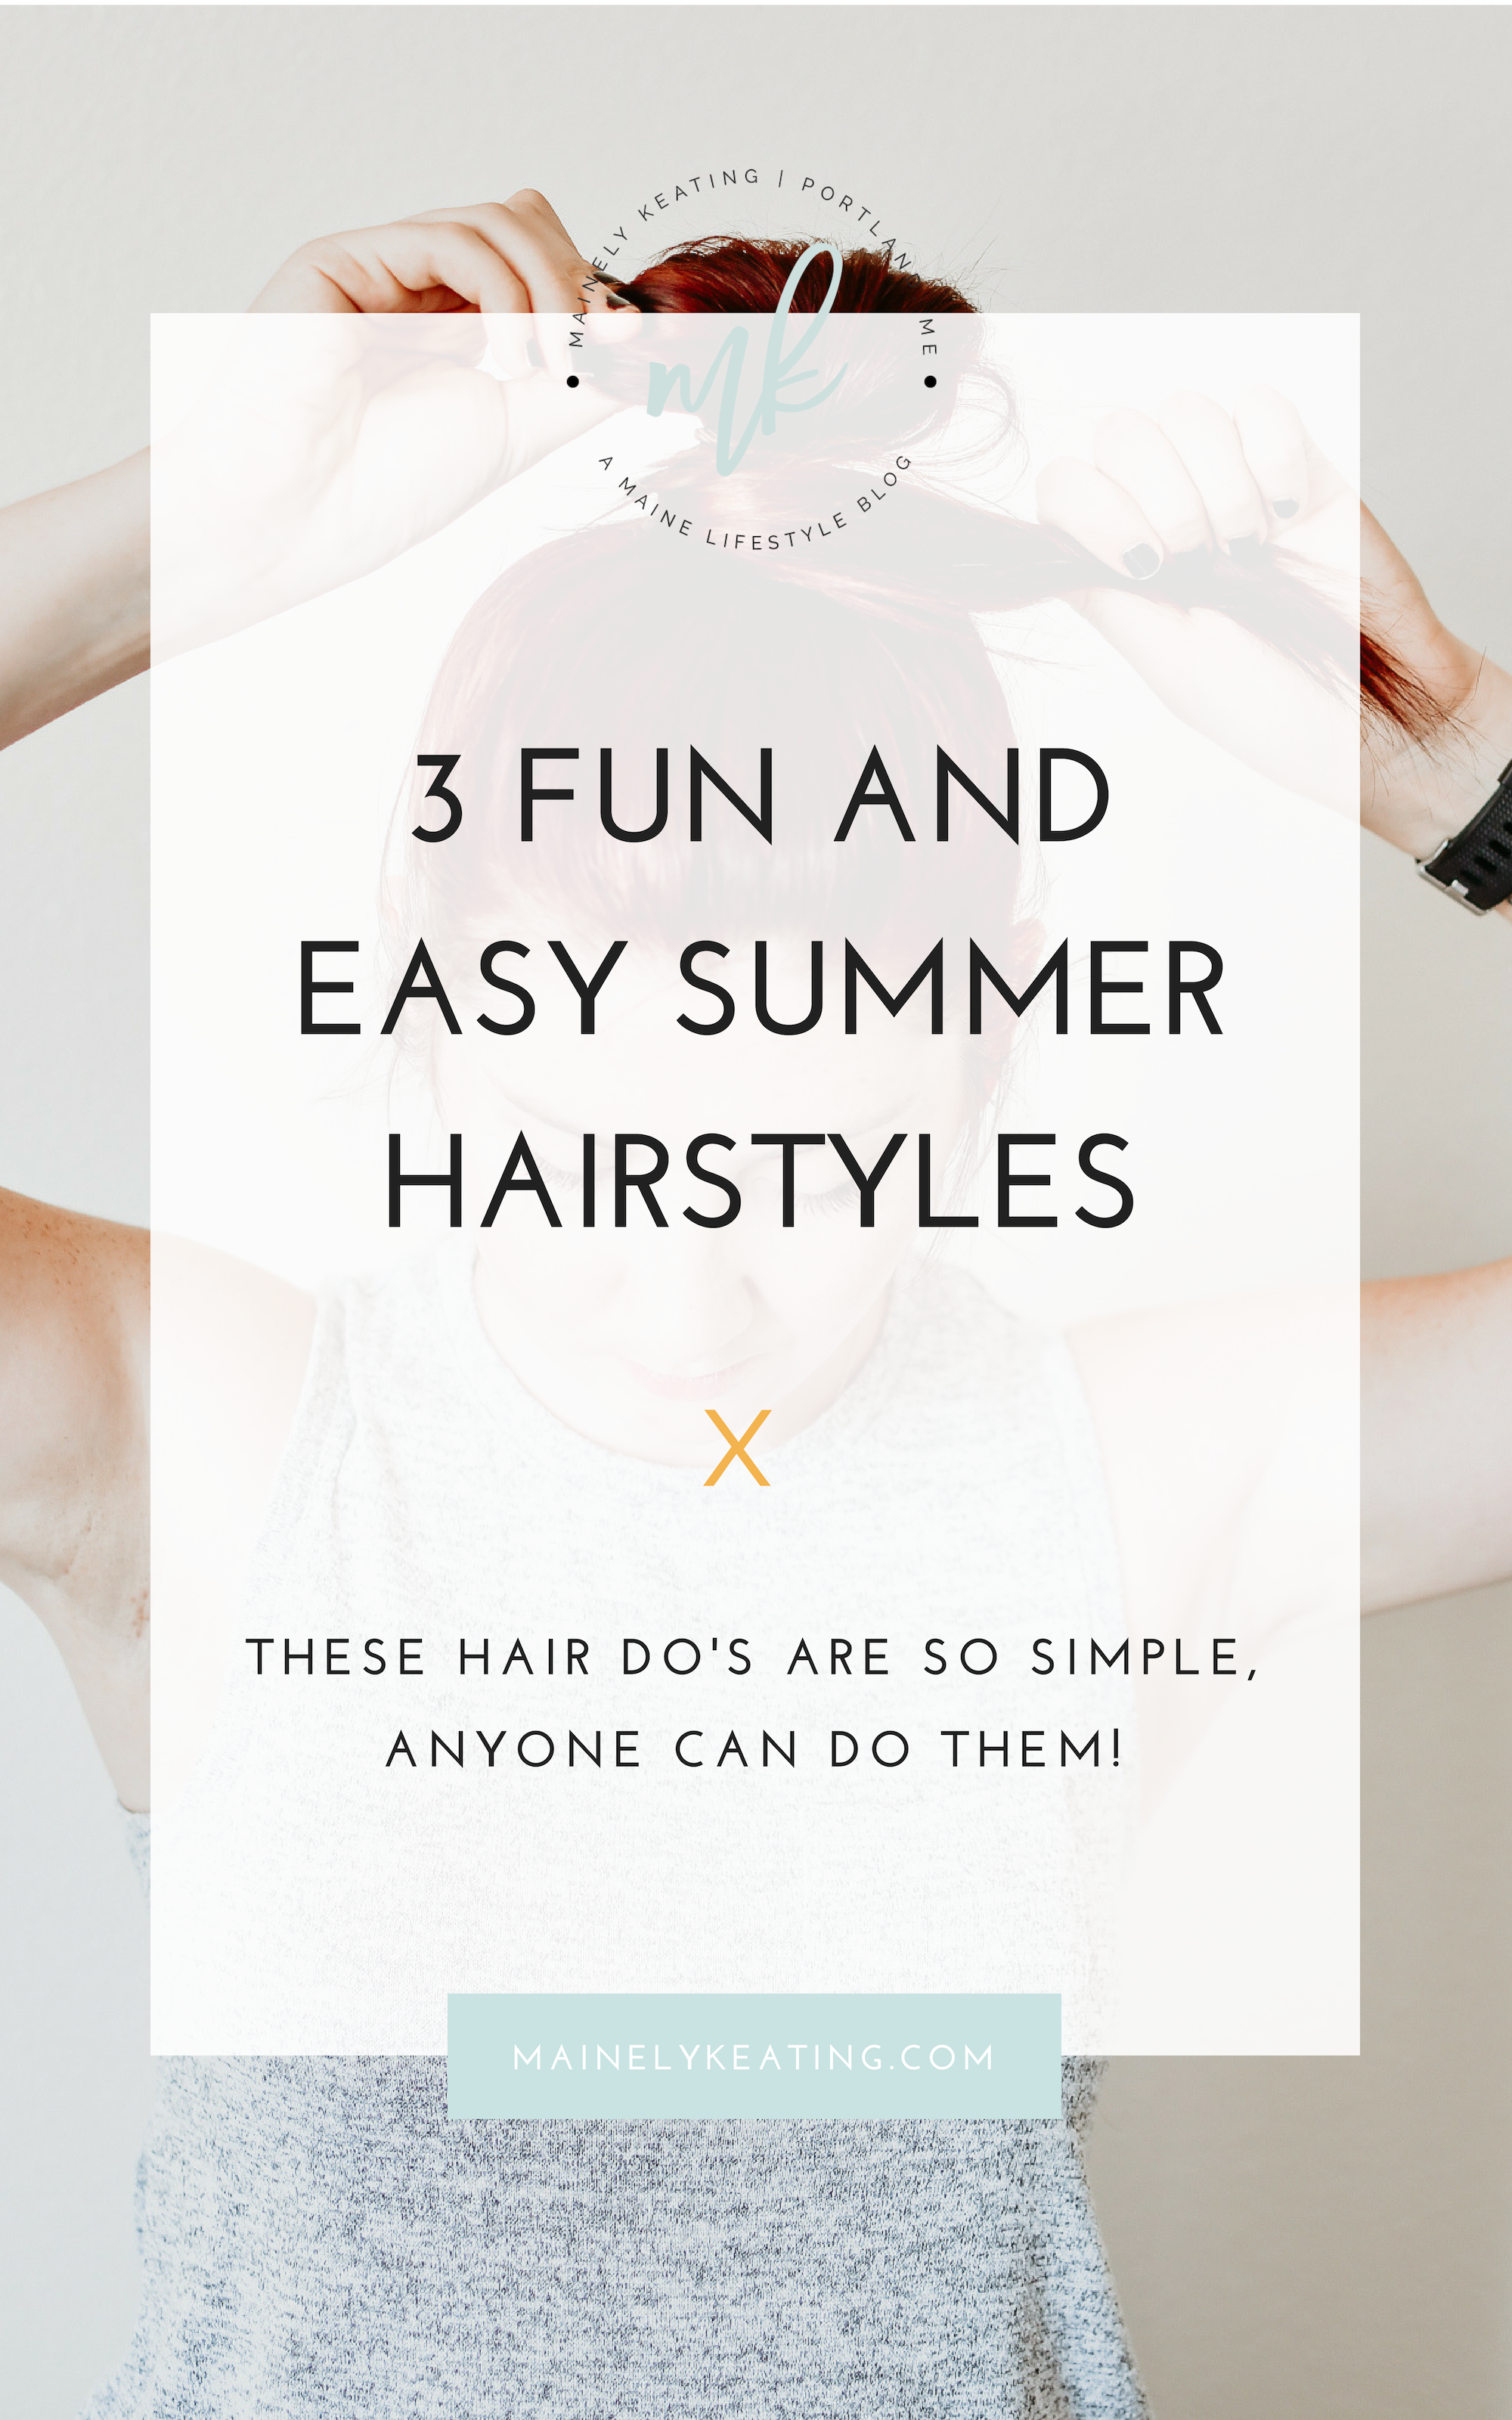 3 Fun and Easy Summer Hairstyles